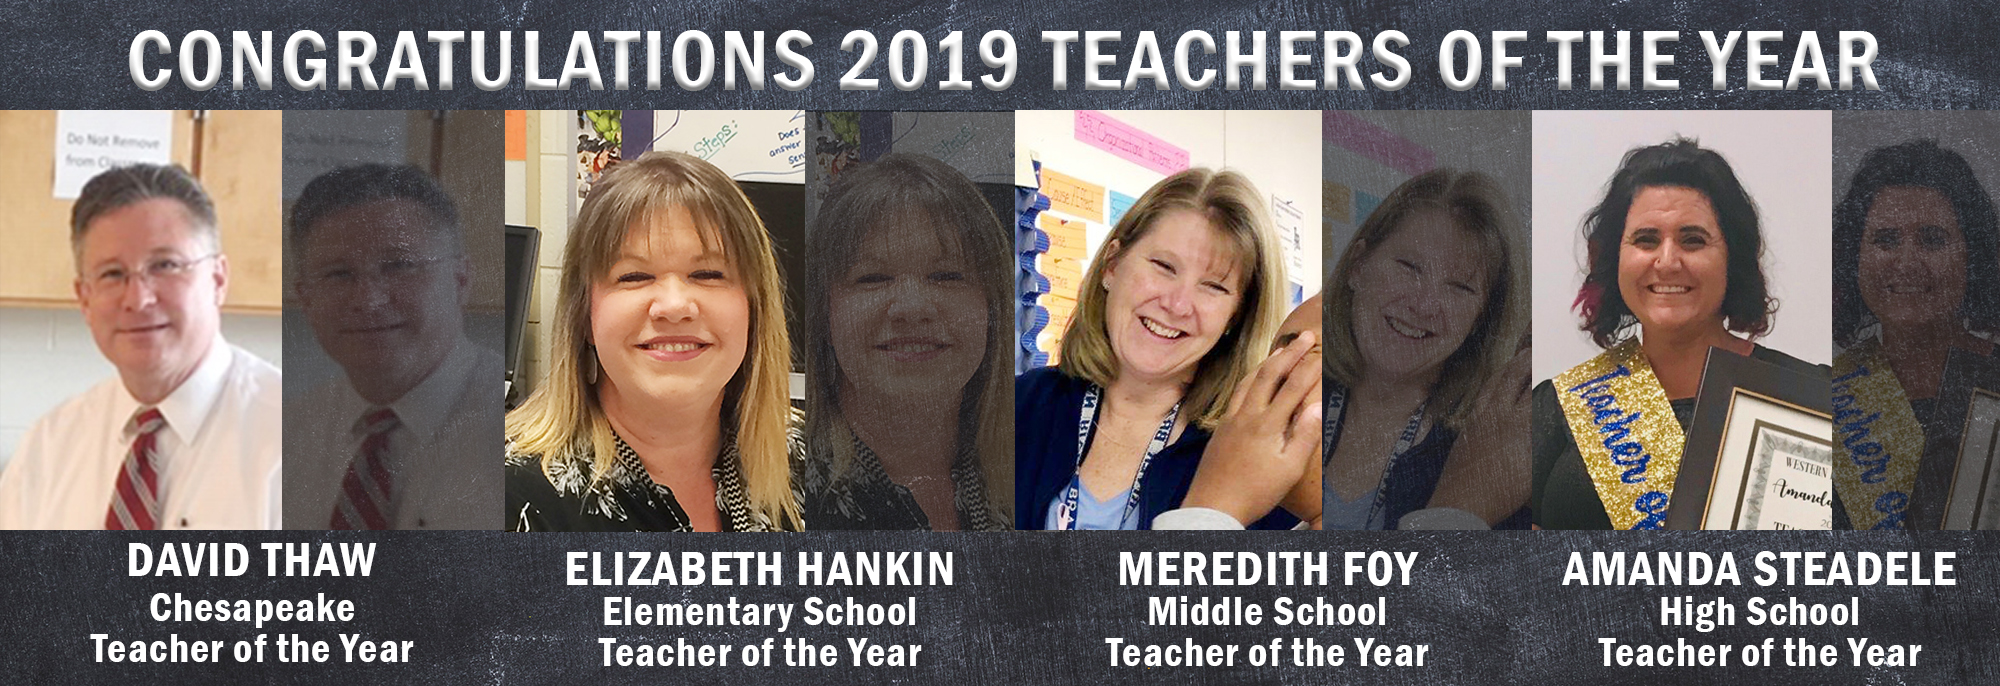 Congratulations 2019 Teachers of the Year. David Thaw - Chesapeake Teacher of the Year. Elizabeth Hankin - Elementary Teacher of the Year. Meredith Foy - Middle School Teacher of the Year. Amanda Steadele - High School Teacher of the Year.